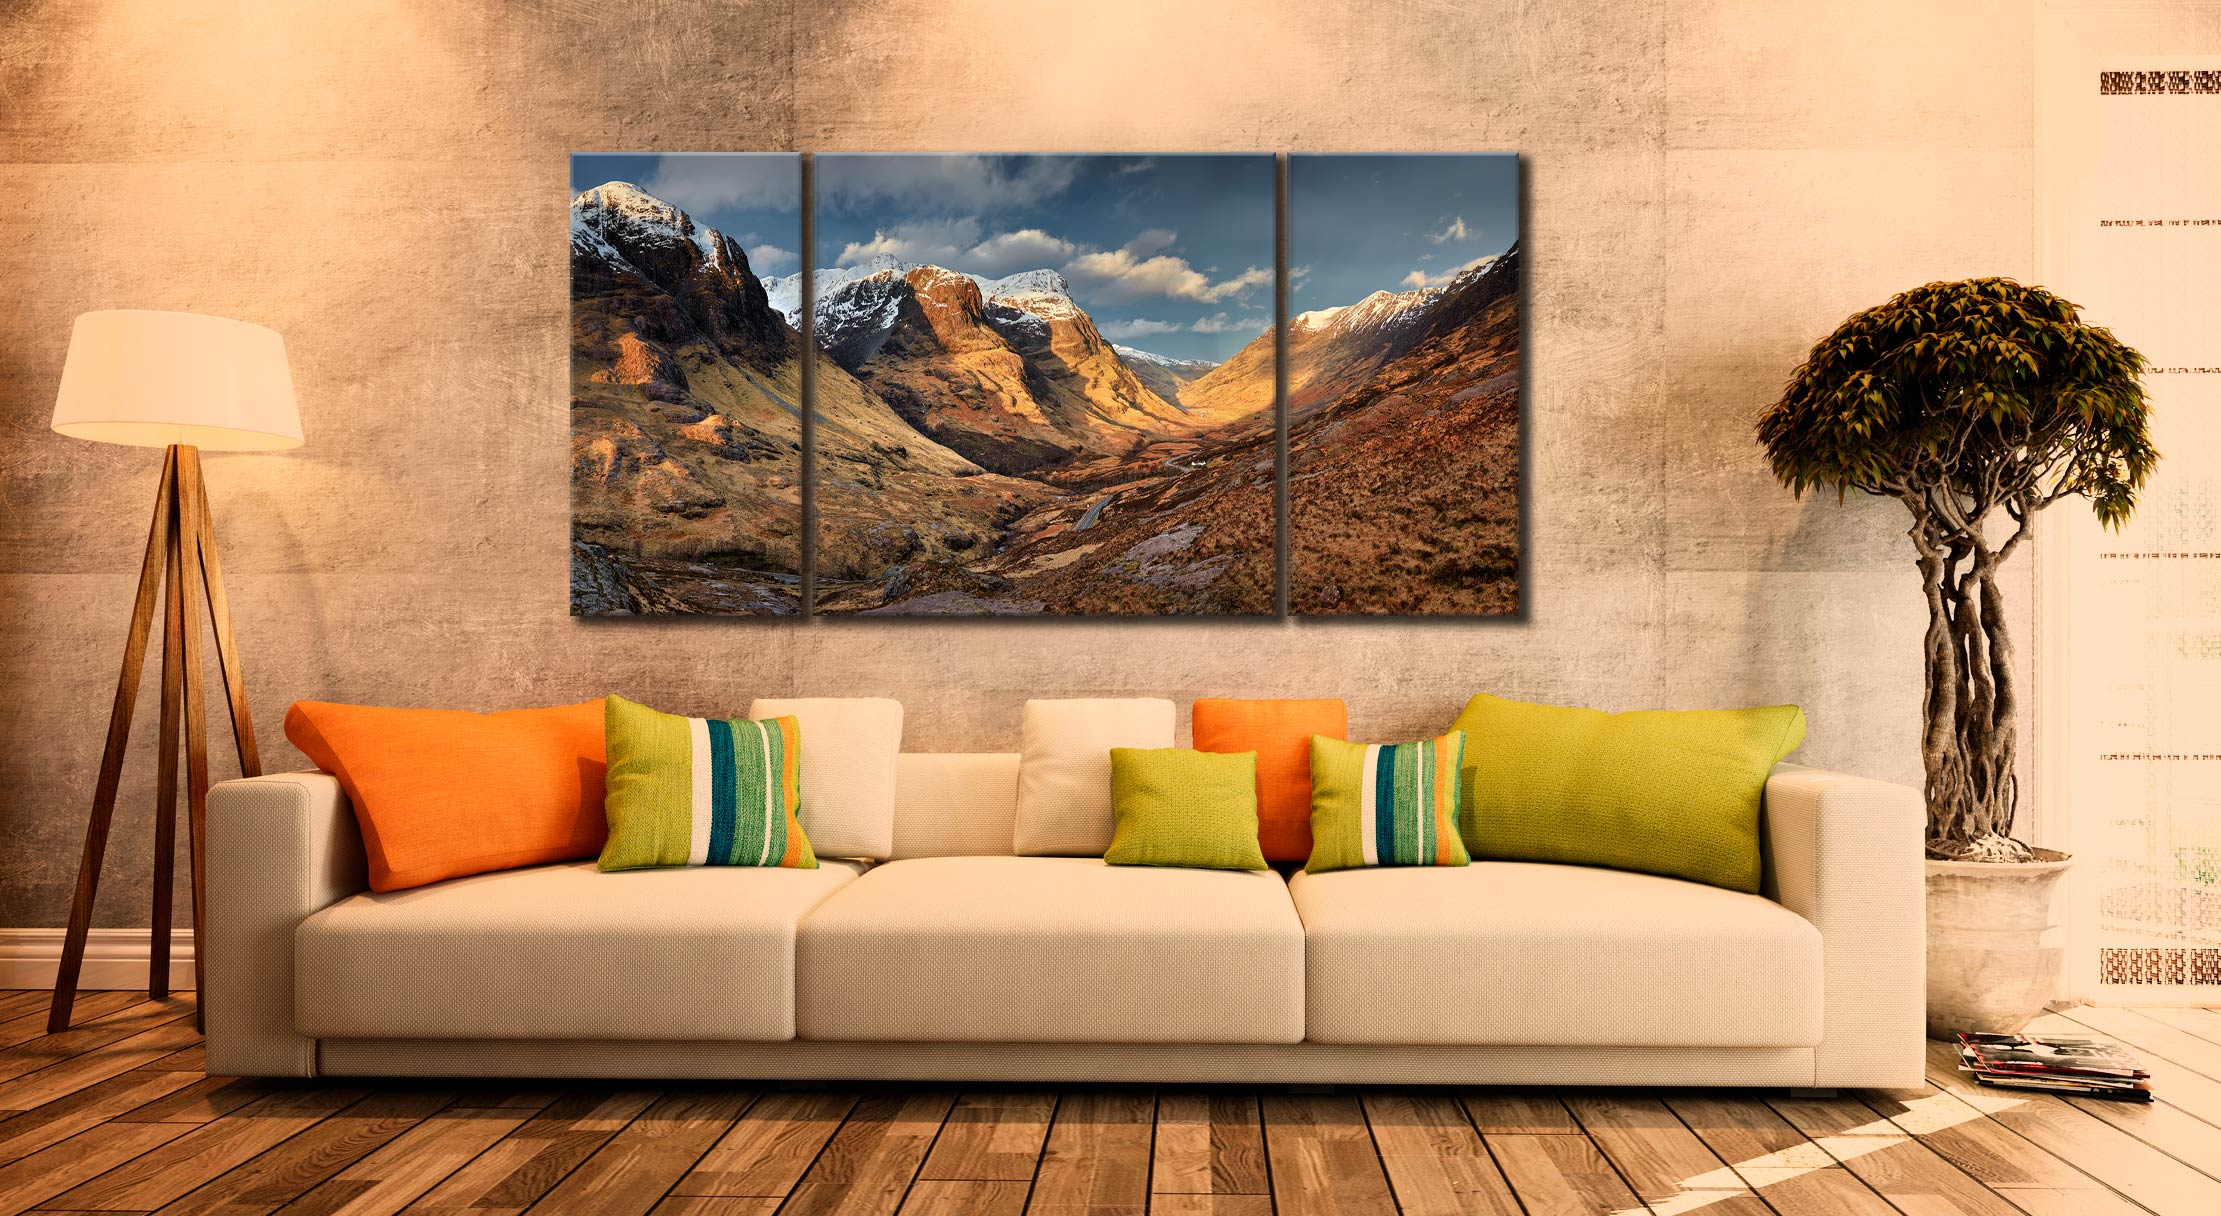 Mountains of Glencoe - 3 Panel Wide Centre Canvas on Wall